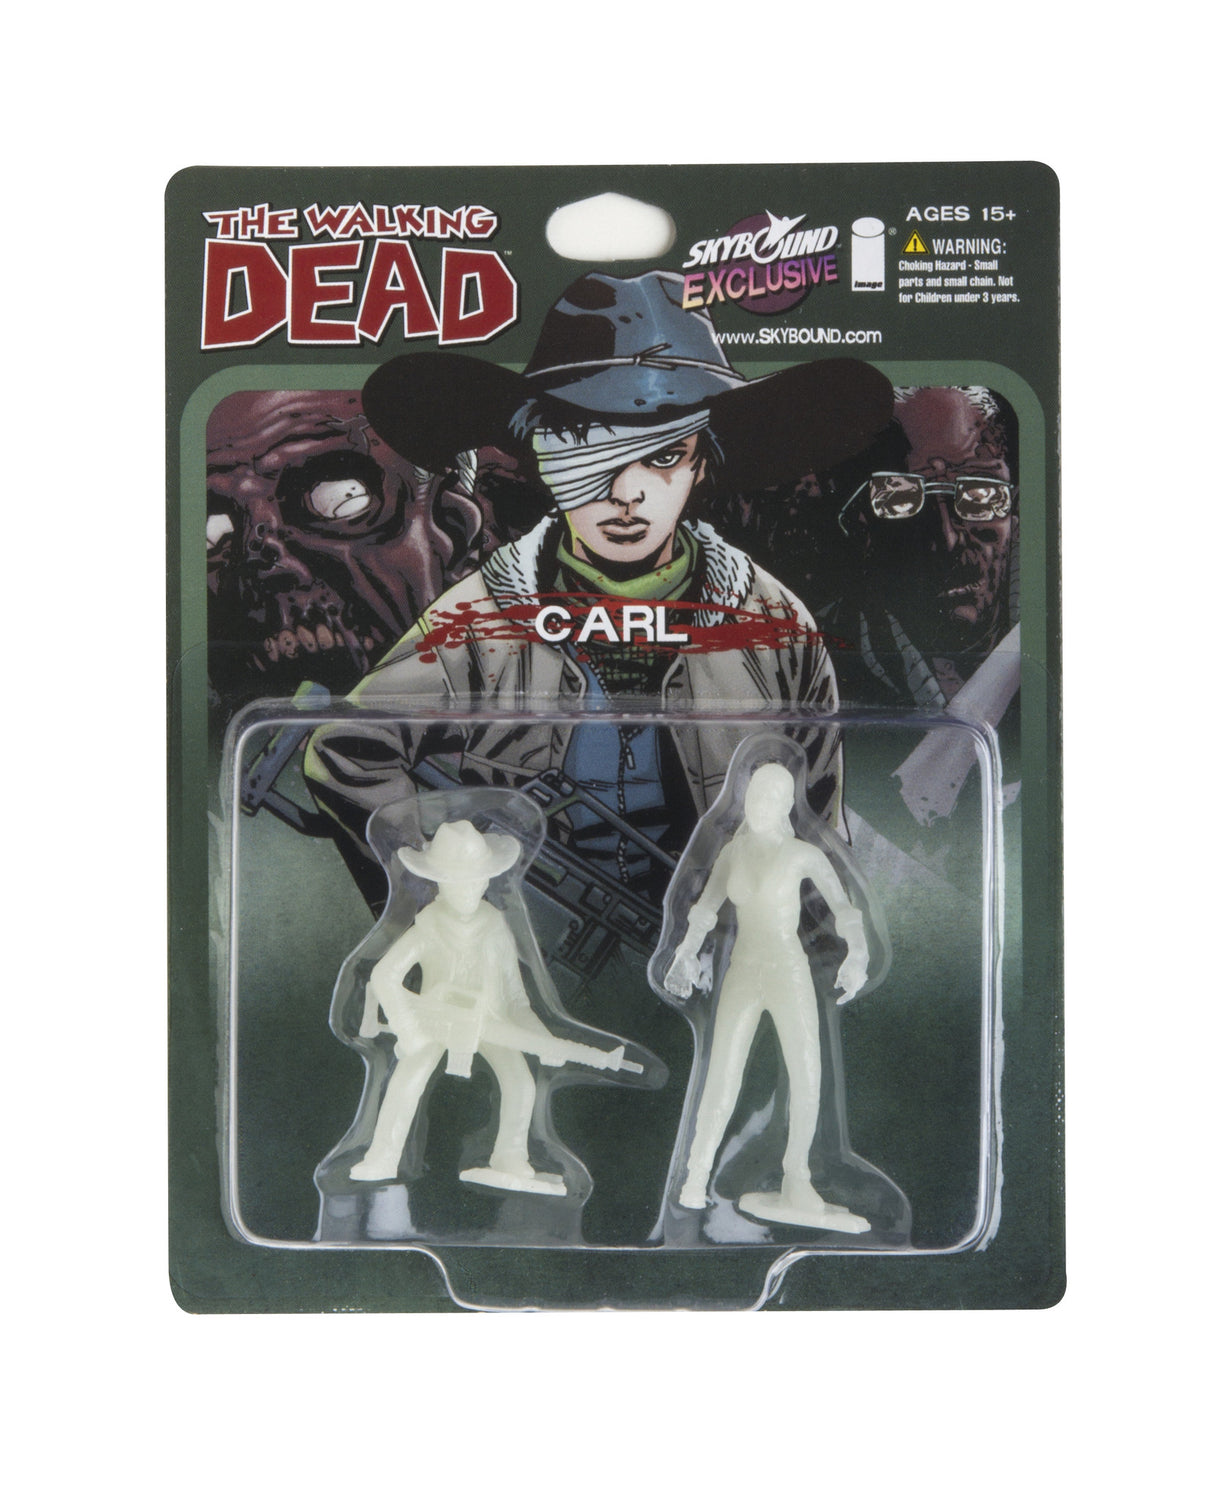 THE WALKING DEAD - Carl PVC Figure (Glow in the Dark)